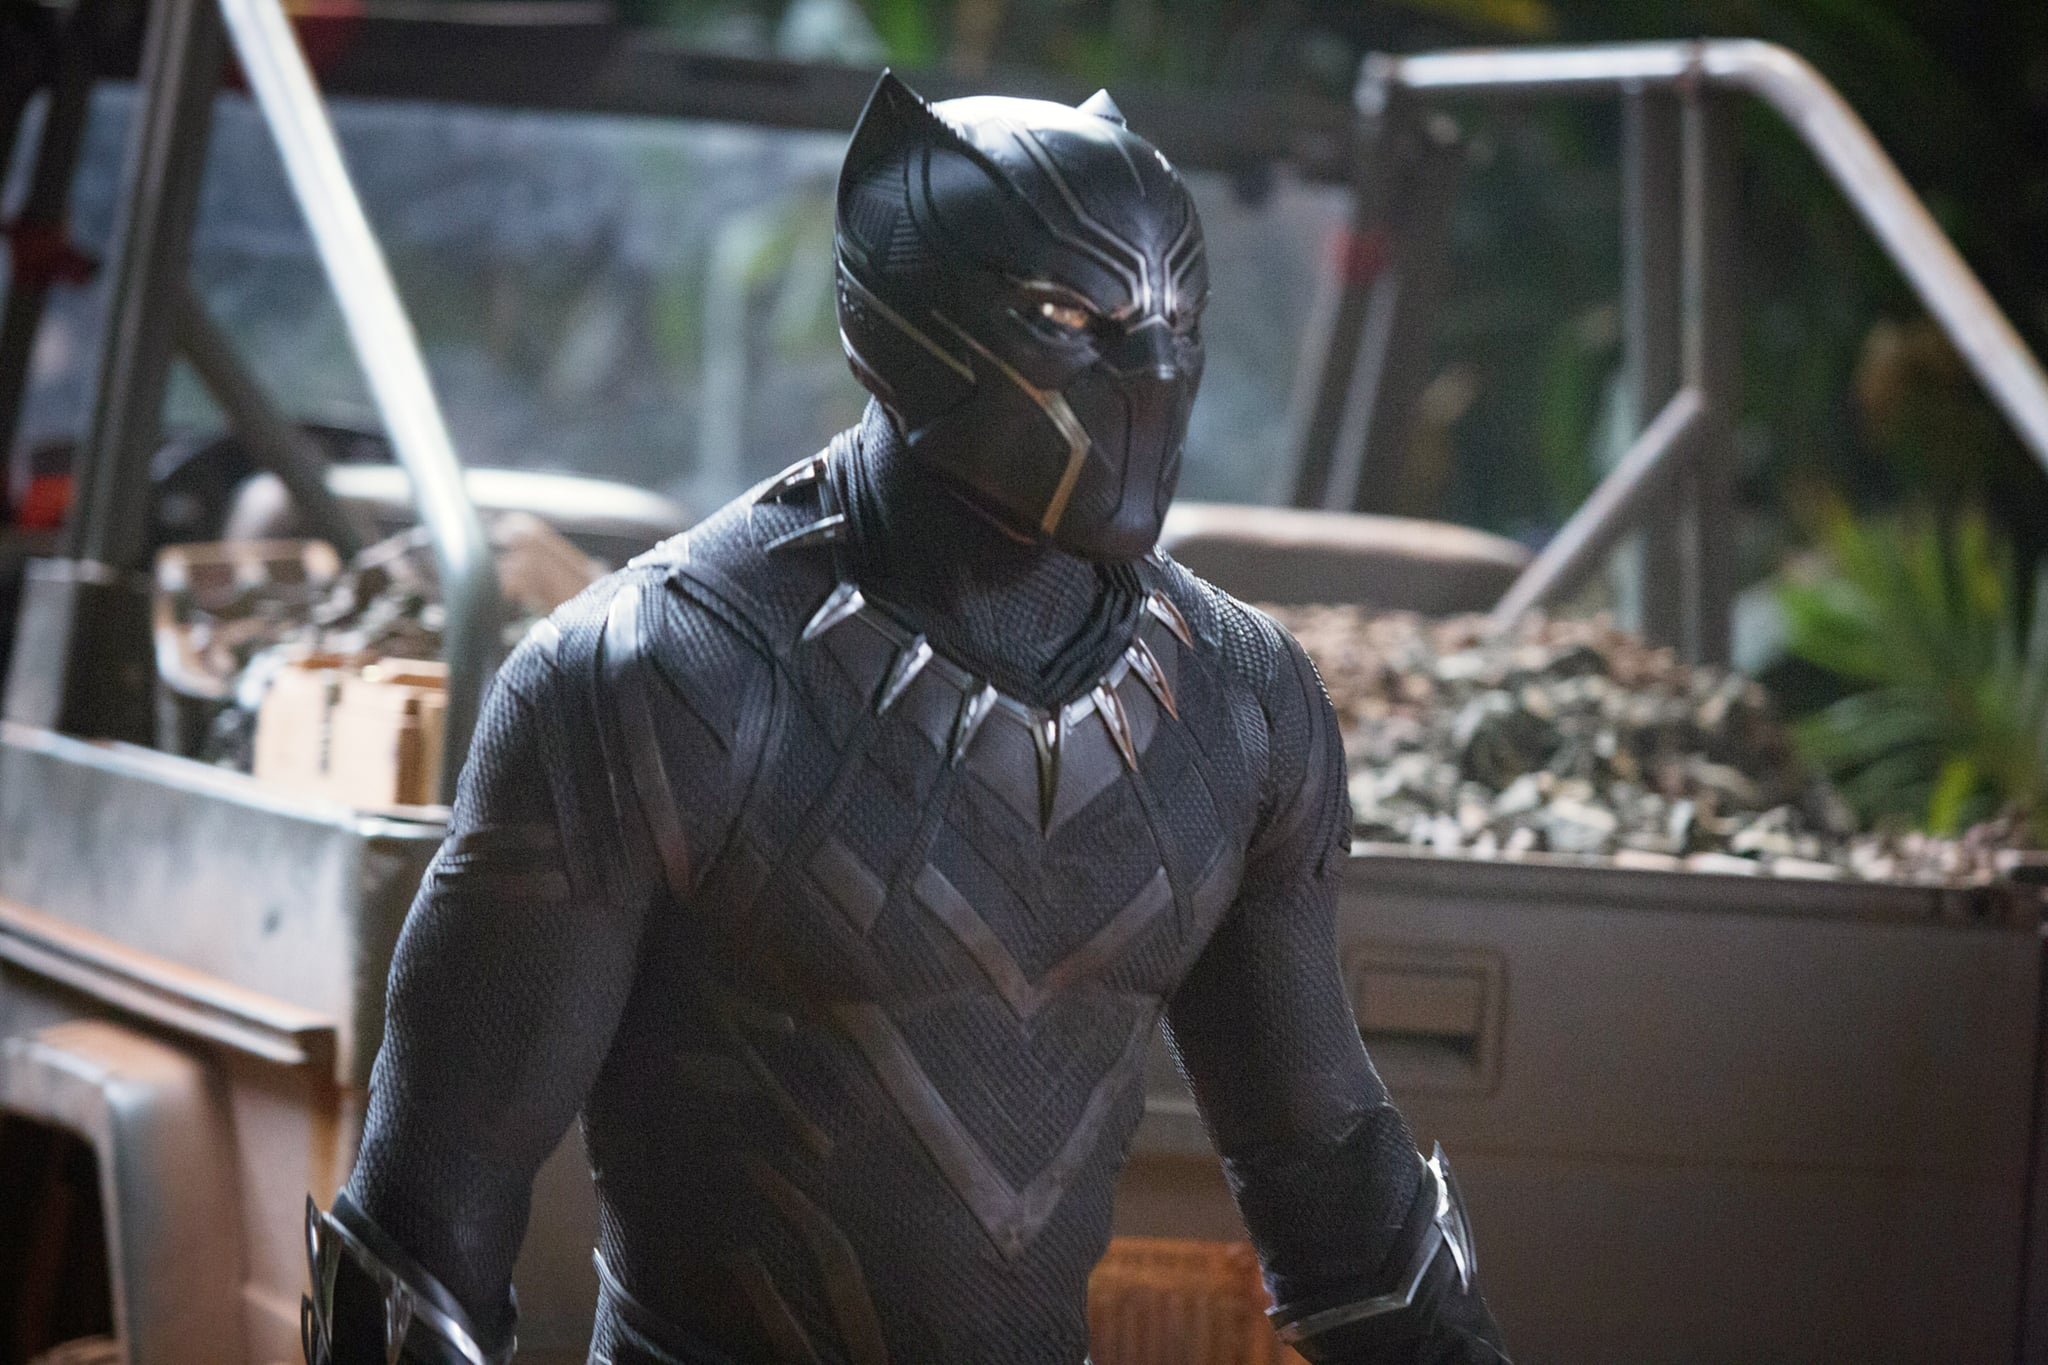 BLACK PANTHER, Chadwick Boseman as Black Panther, 2018. ph: Matt Kennedy / Marvel /  Walt Disney Studios Motion Pictures /Courtesy Everett Collection